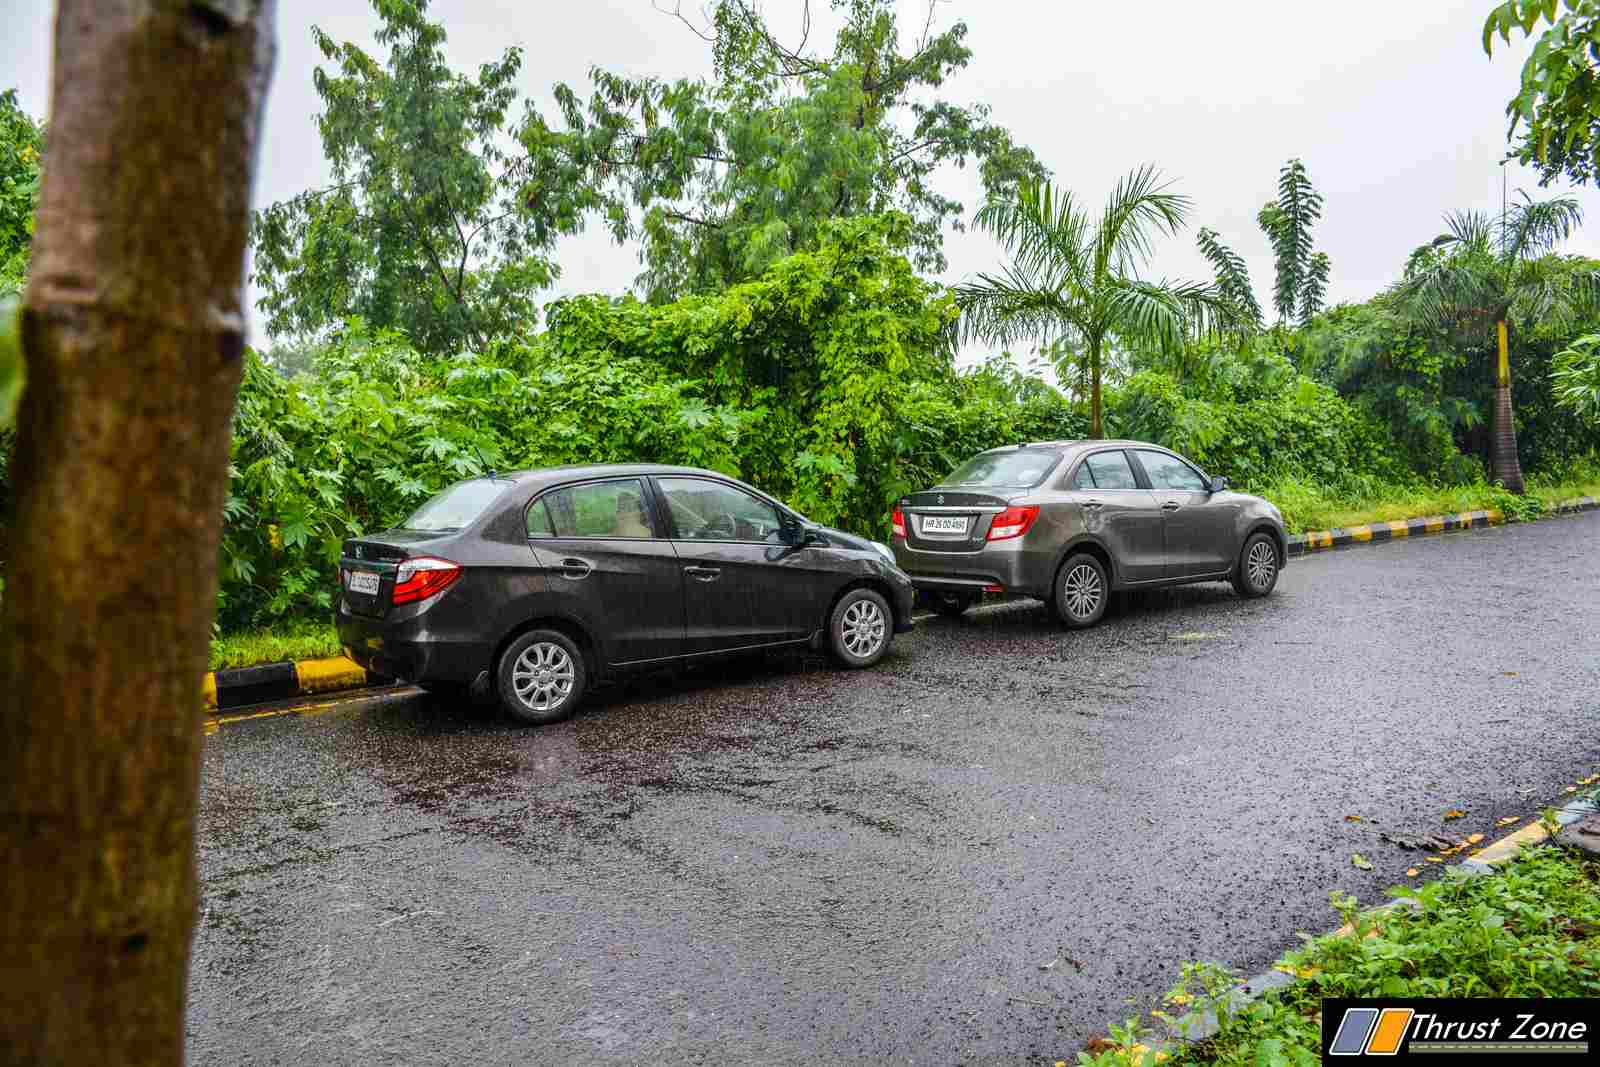 https://www.thrustzone.com/wp-content/uploads/2017/10/Honda-Amaze-vs-Maruti-Dzire-Petrol-Comparison-Review-4.jpg